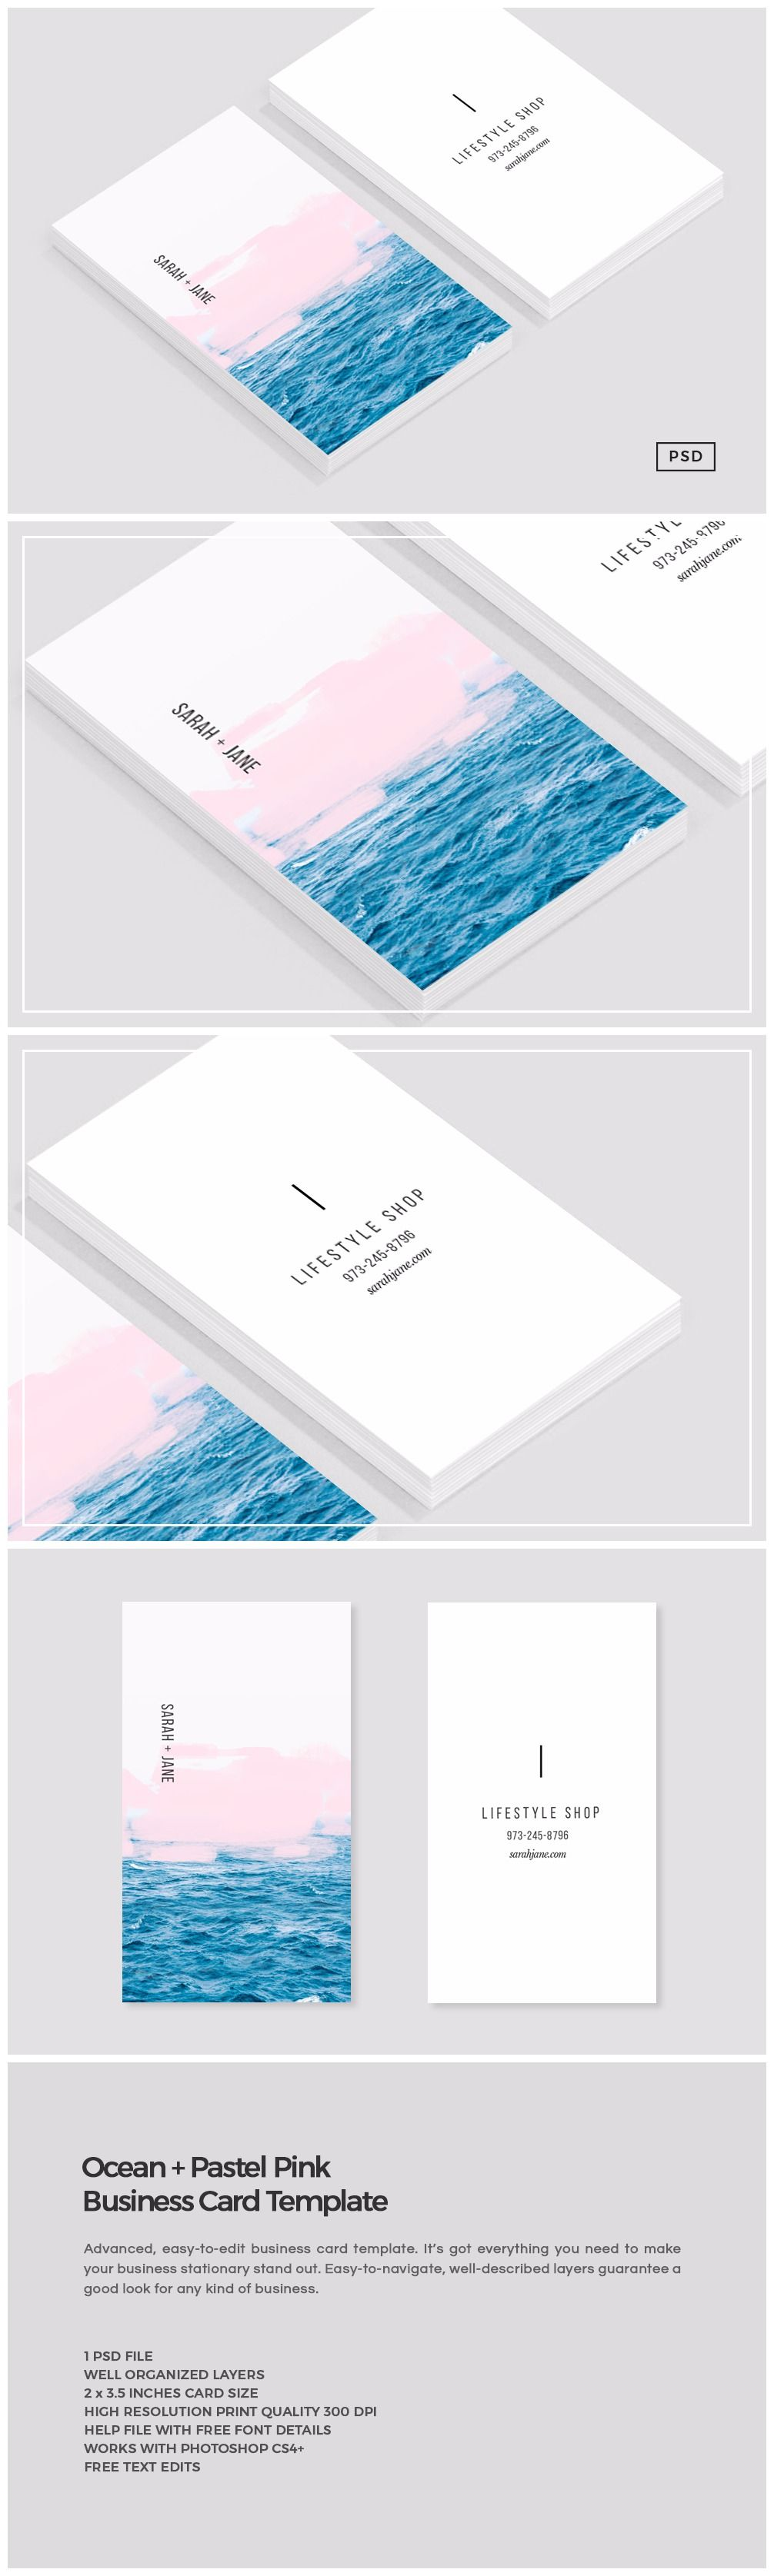 Ocean + Pink Business Card Template by The Design Label on ...